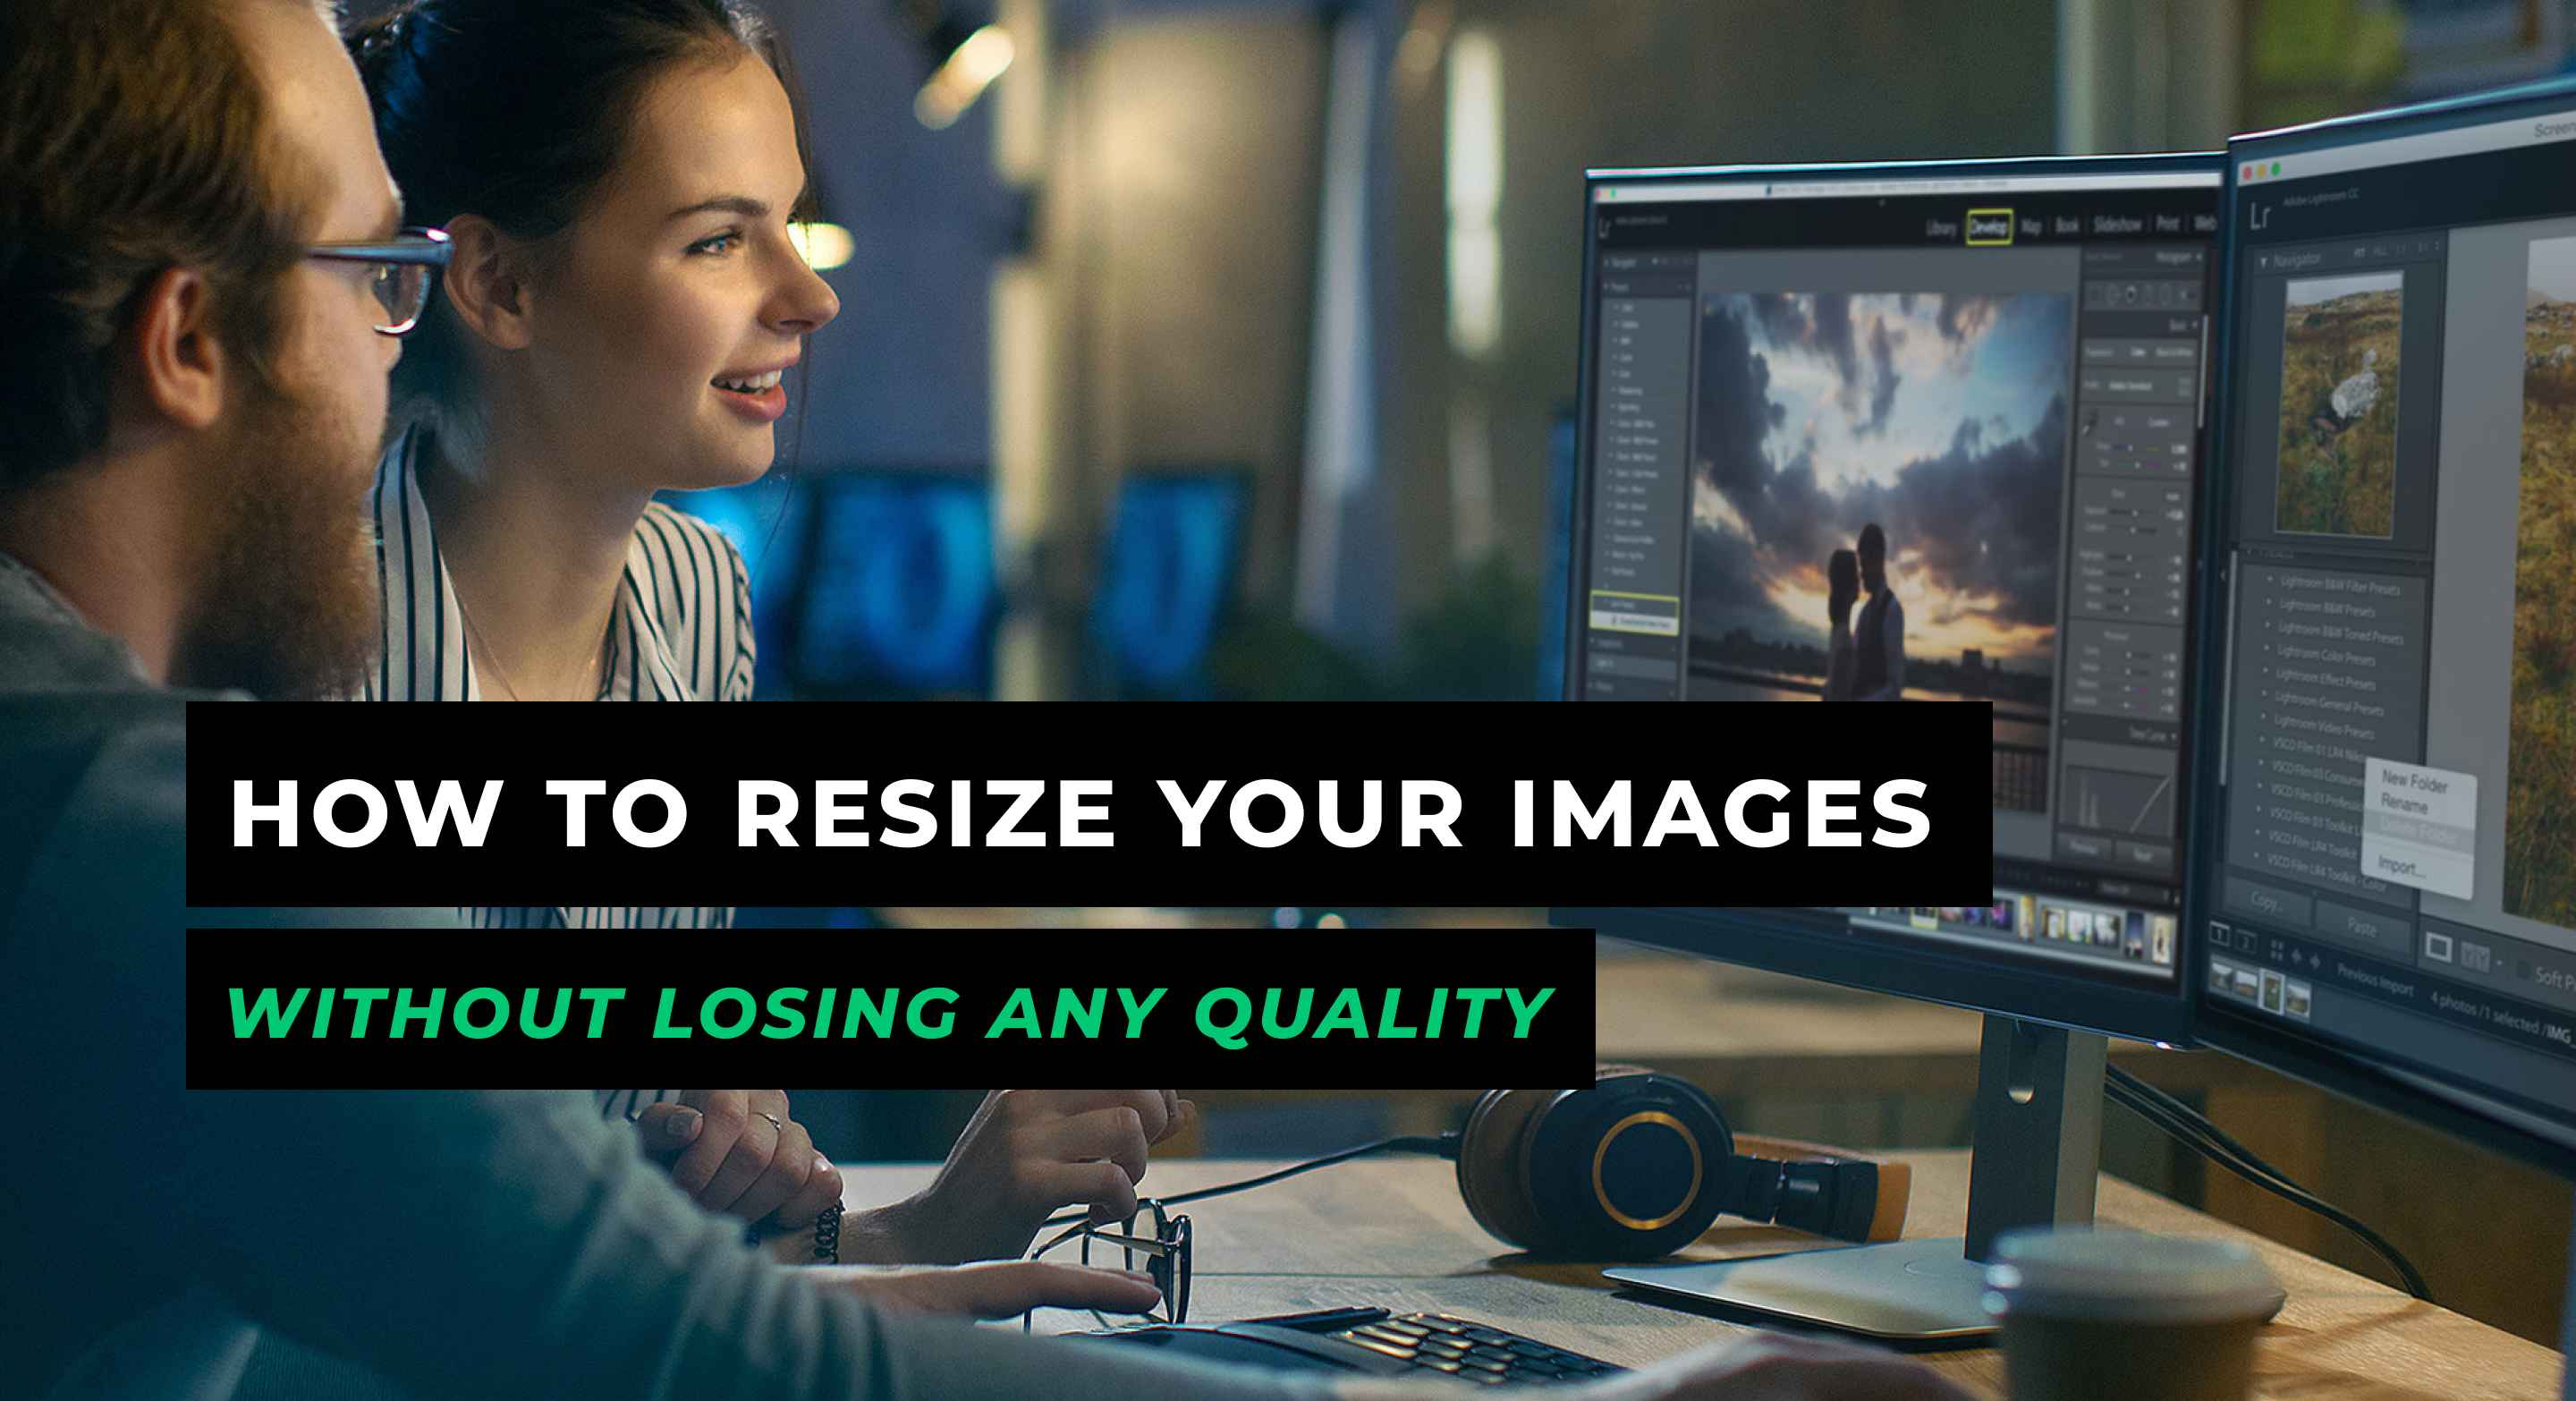 How to Resize Your Images Without Losing Any Quality